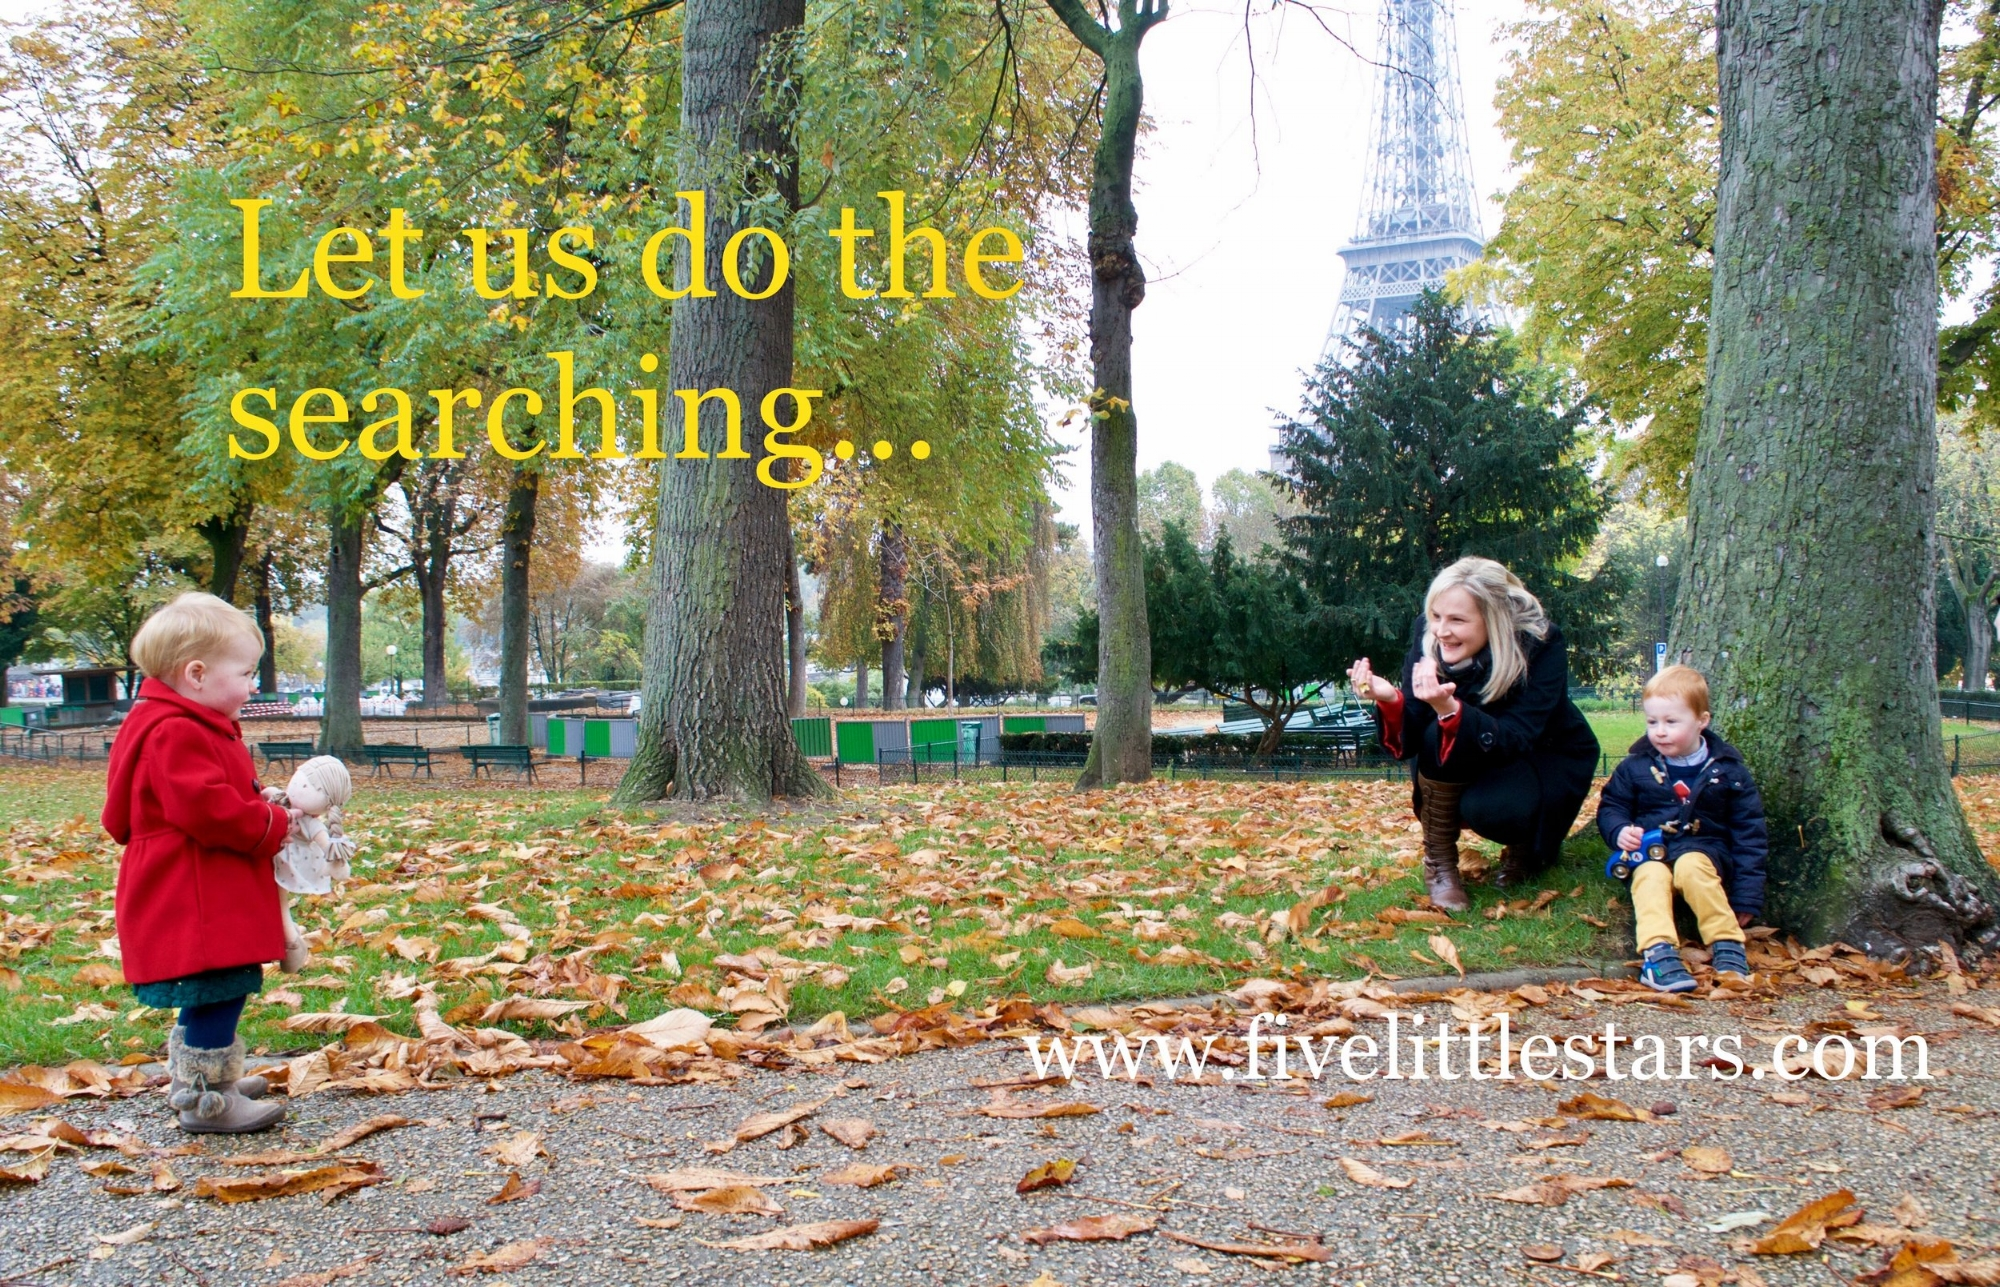 Let us do the searching...